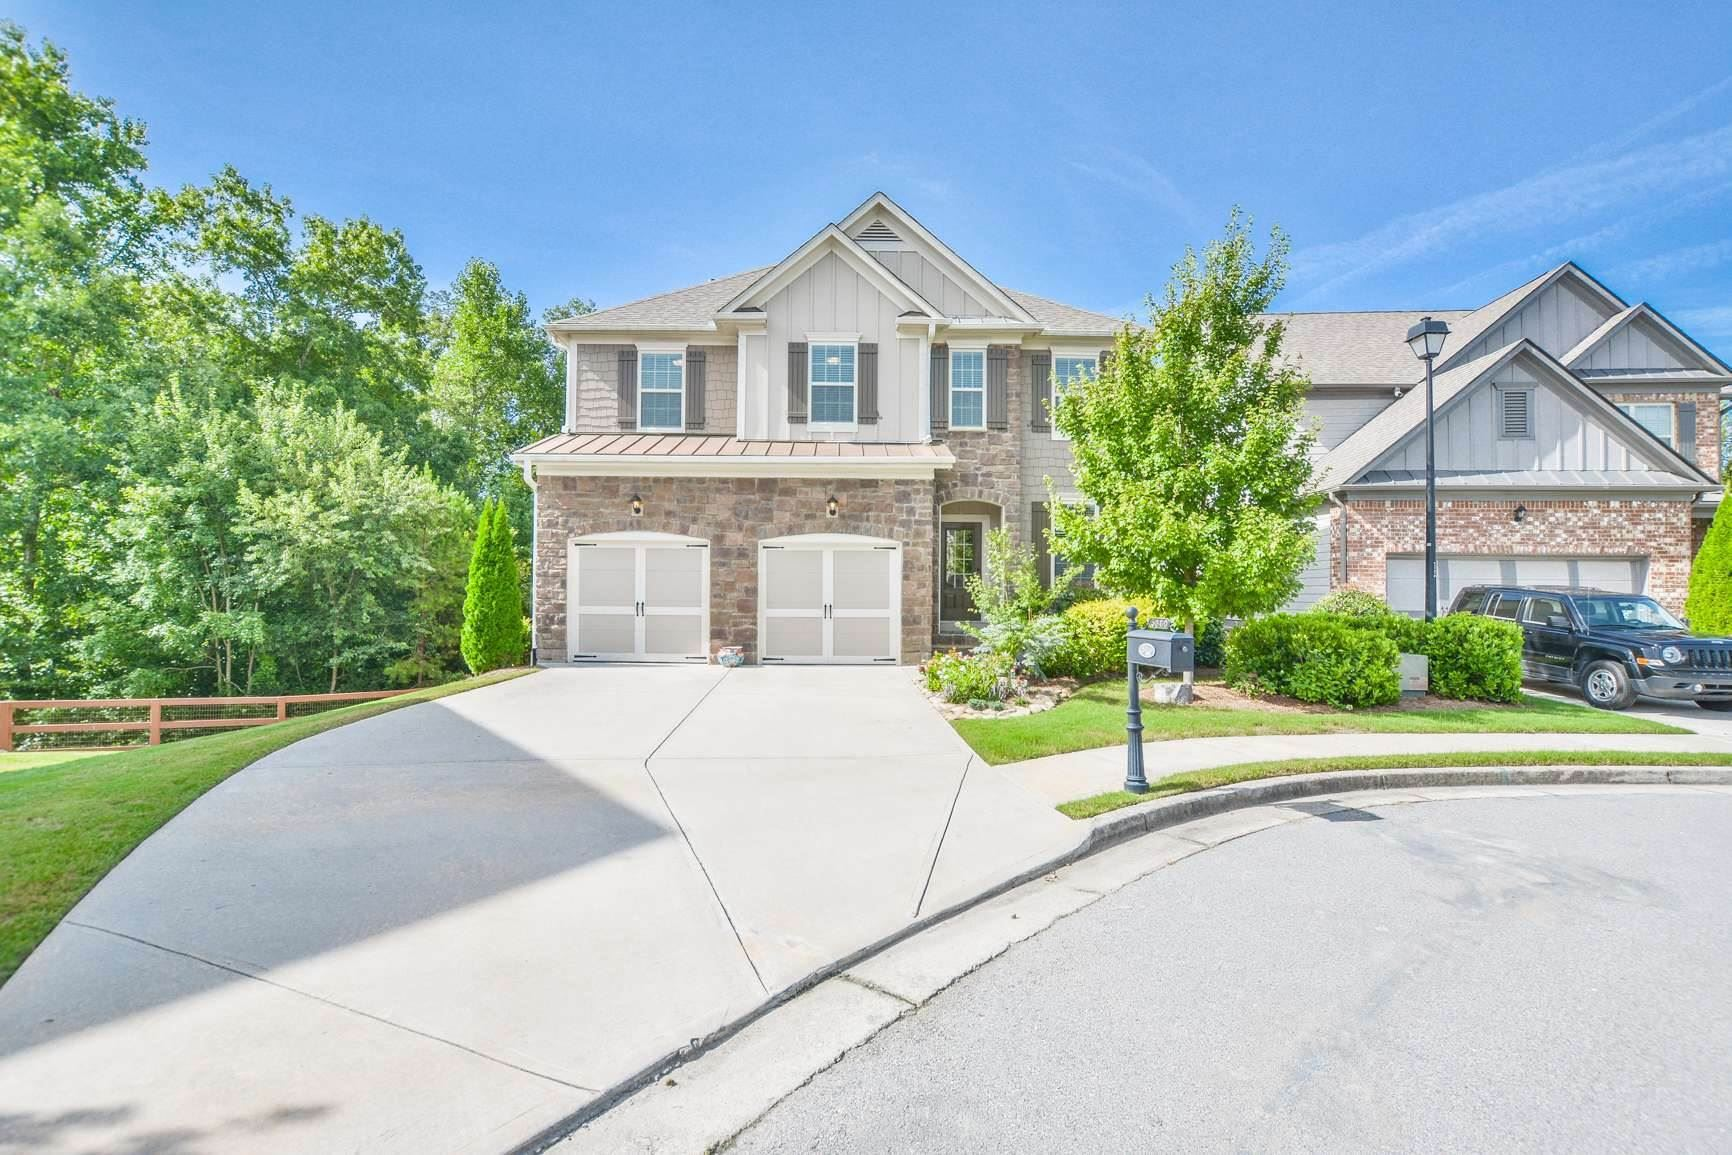 6880 Outrigger Ct, Flowery Branch, GA 30542 - #: 8847975